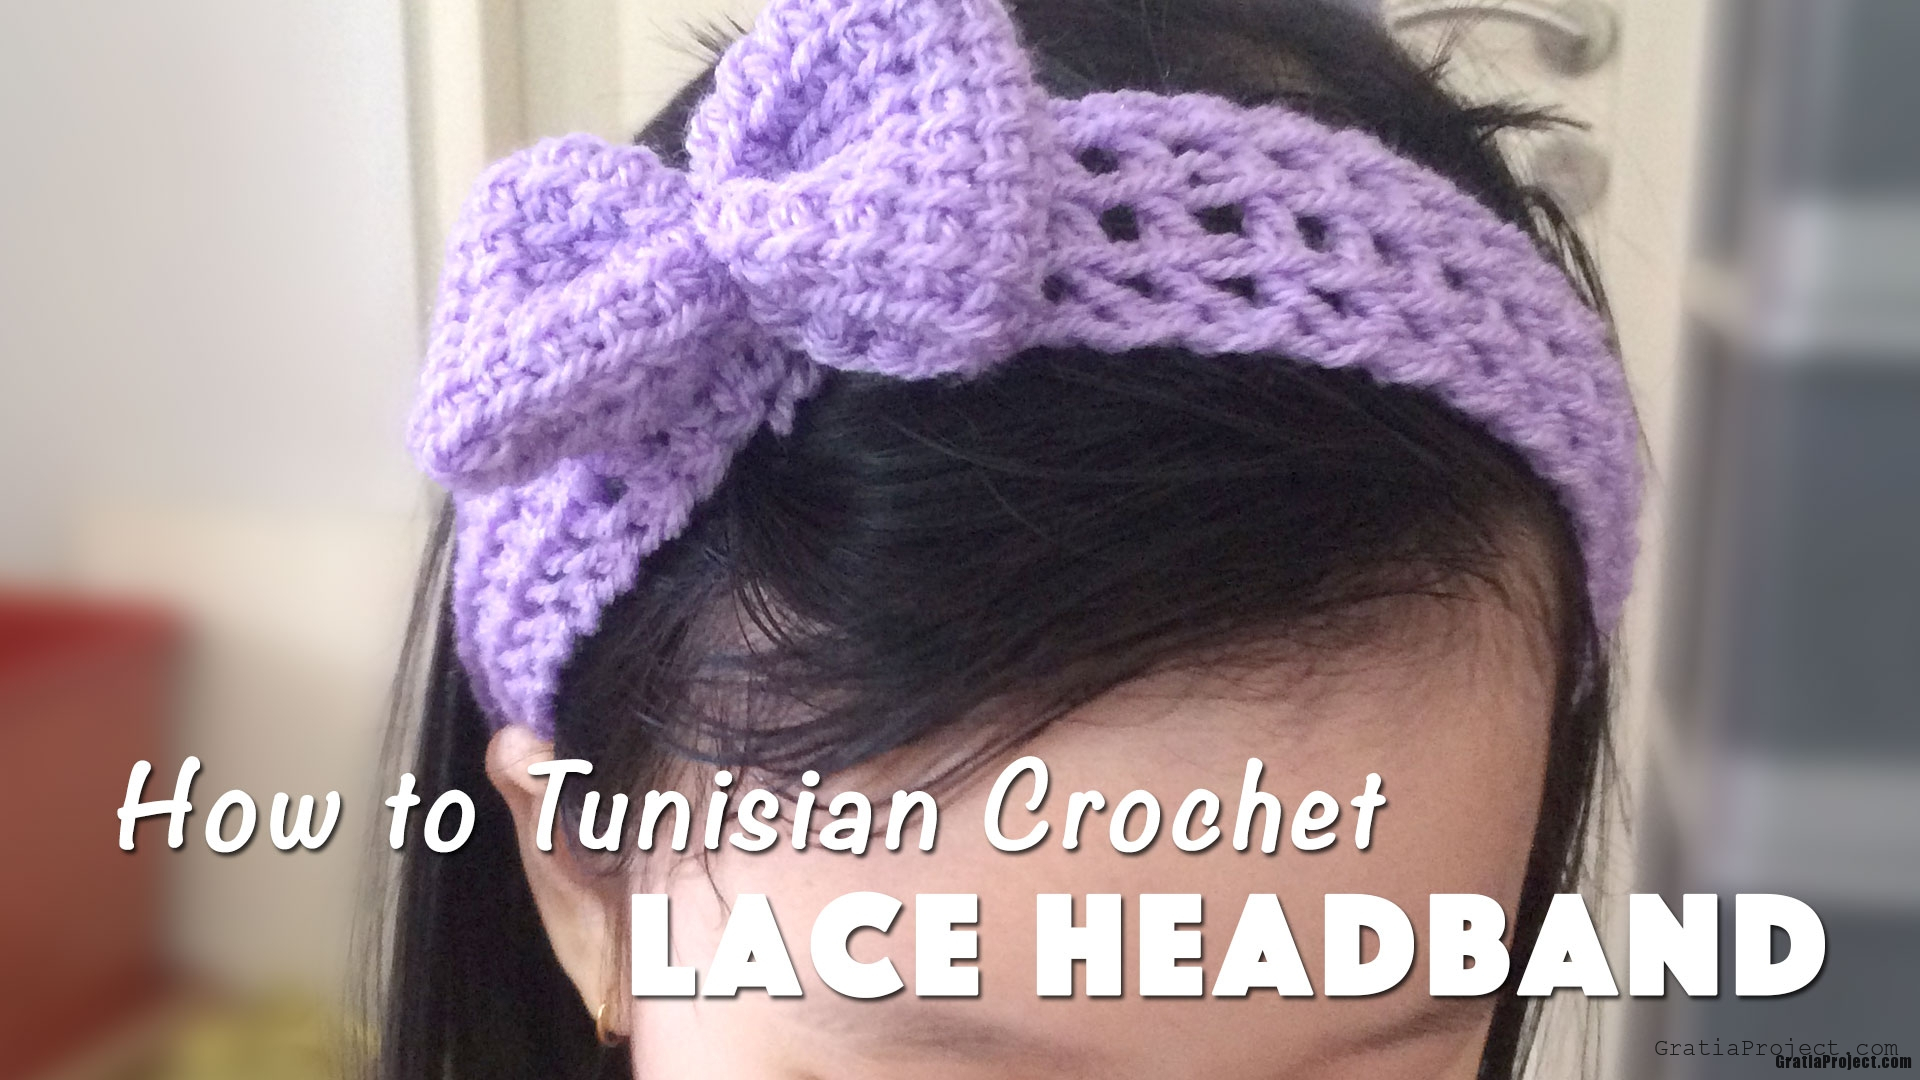 how-to-tunisian-crochet-lace-headband